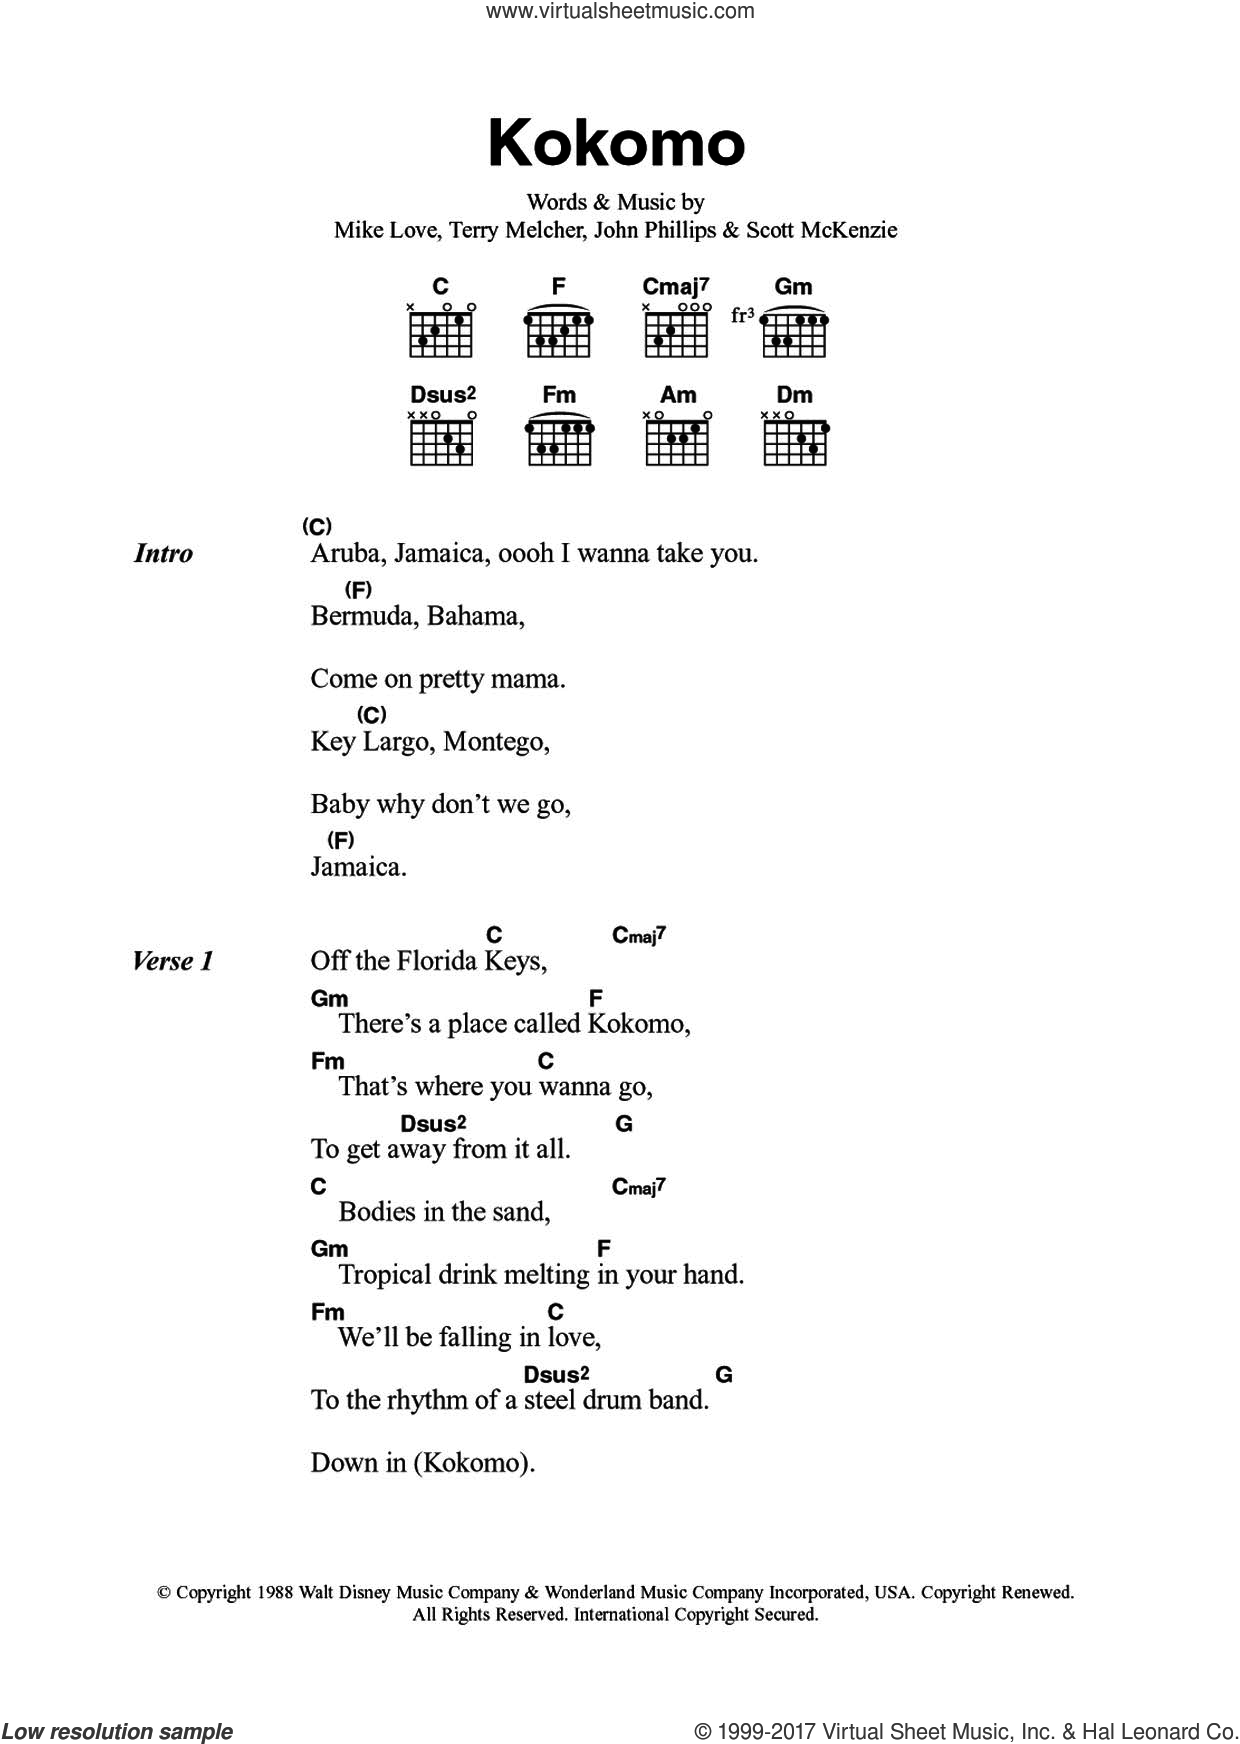 Kokomo sheet music for guitar (chords) by The Beach Boys, John Phillips, Mike Love, Scott McKenzie and Terry Melcher, intermediate skill level